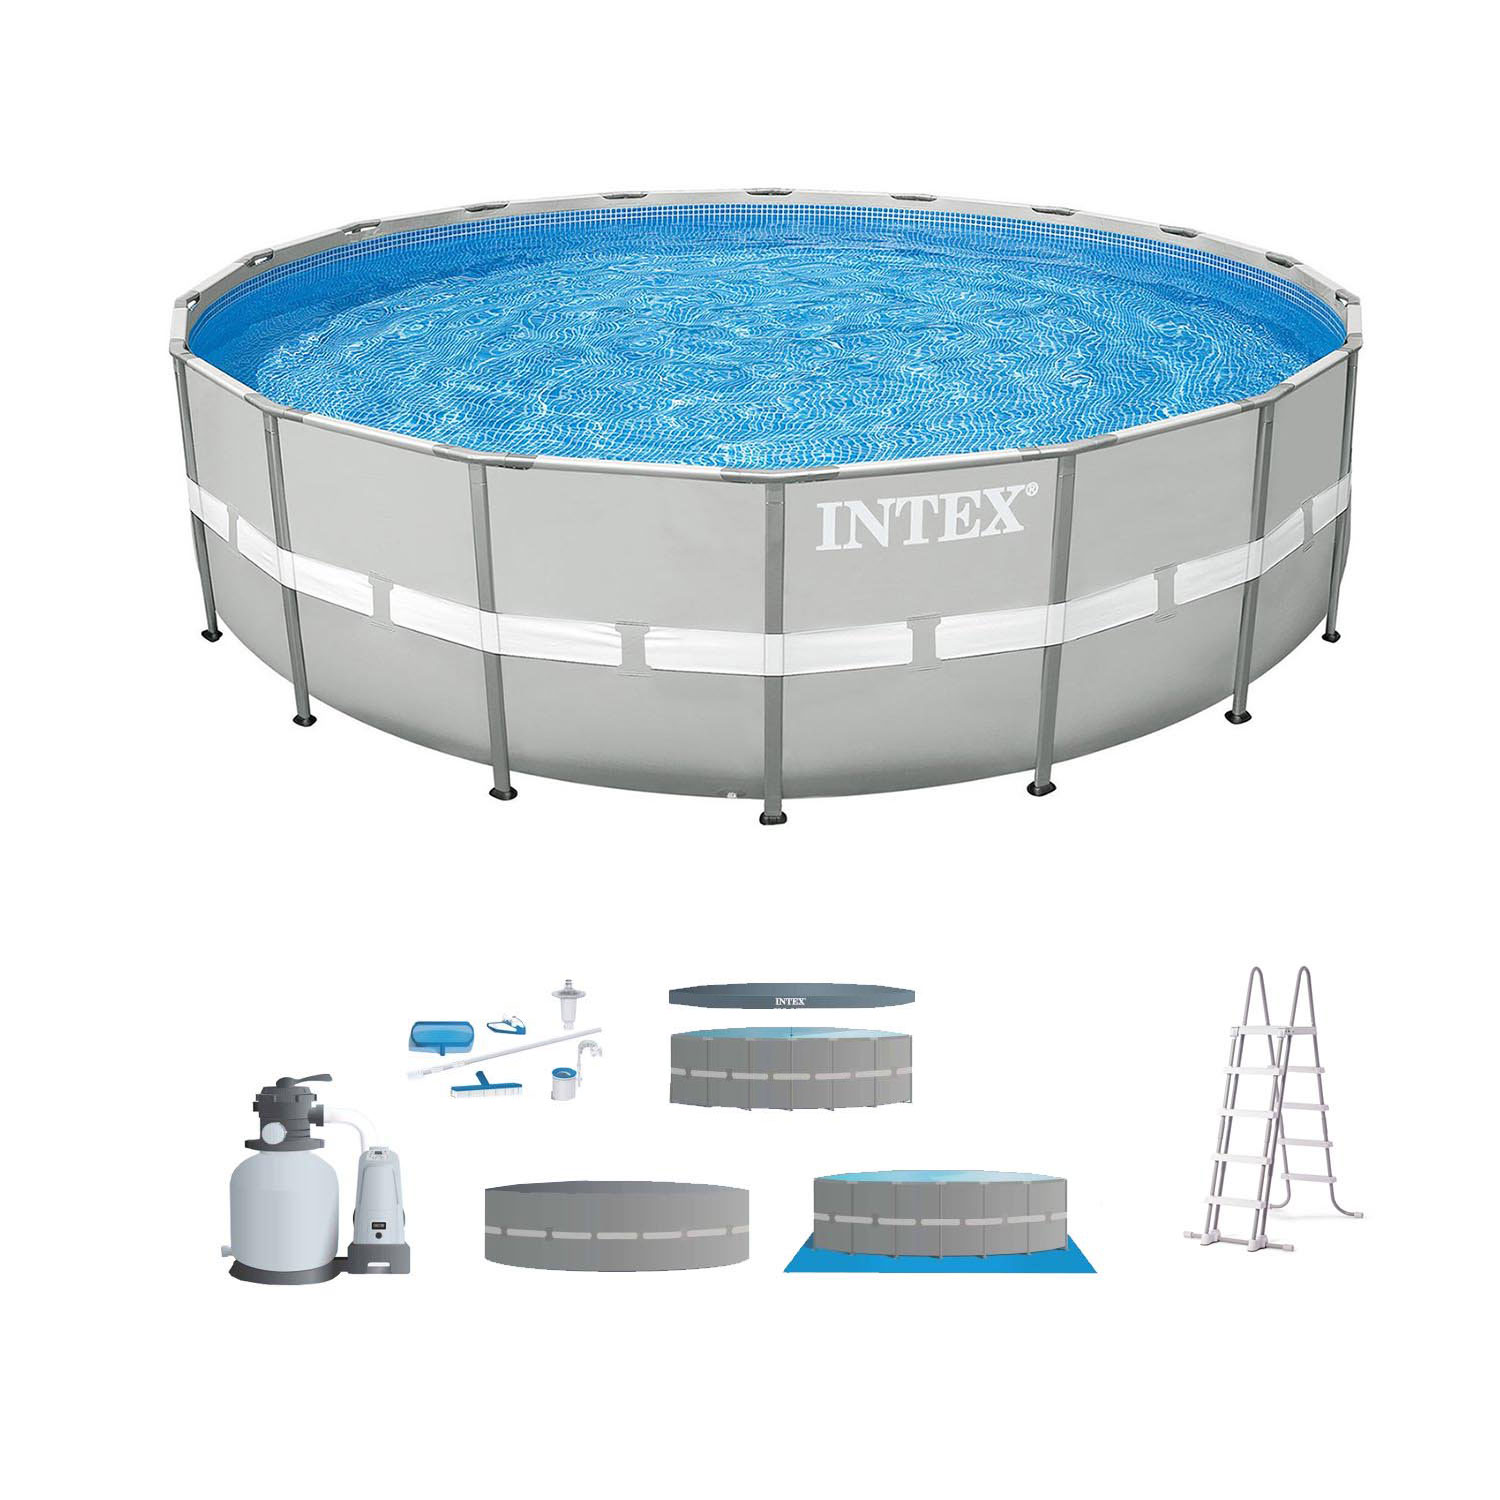 "Intex 24' x 52"" Steel Ultra Frame Round Above Ground Swimming Pool Set with Pump by Intex"